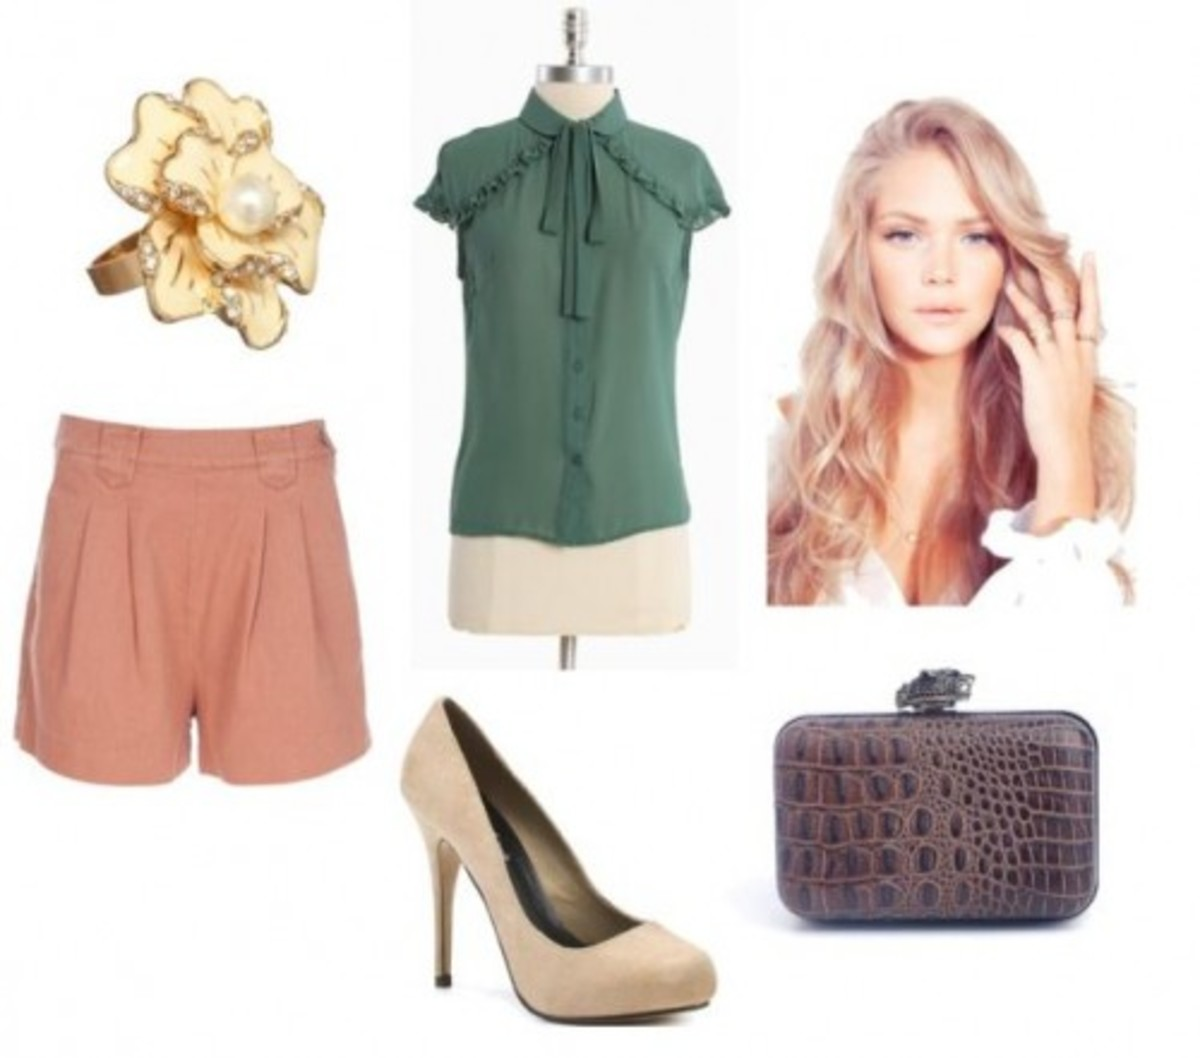 o-peach-shorts-green-olive-top-blouse-ring-paperbag-tan-shoe-pumps-brown-bag-clutch-howtowear-fashion-style-outfit-spring-summer-lunch.jpg